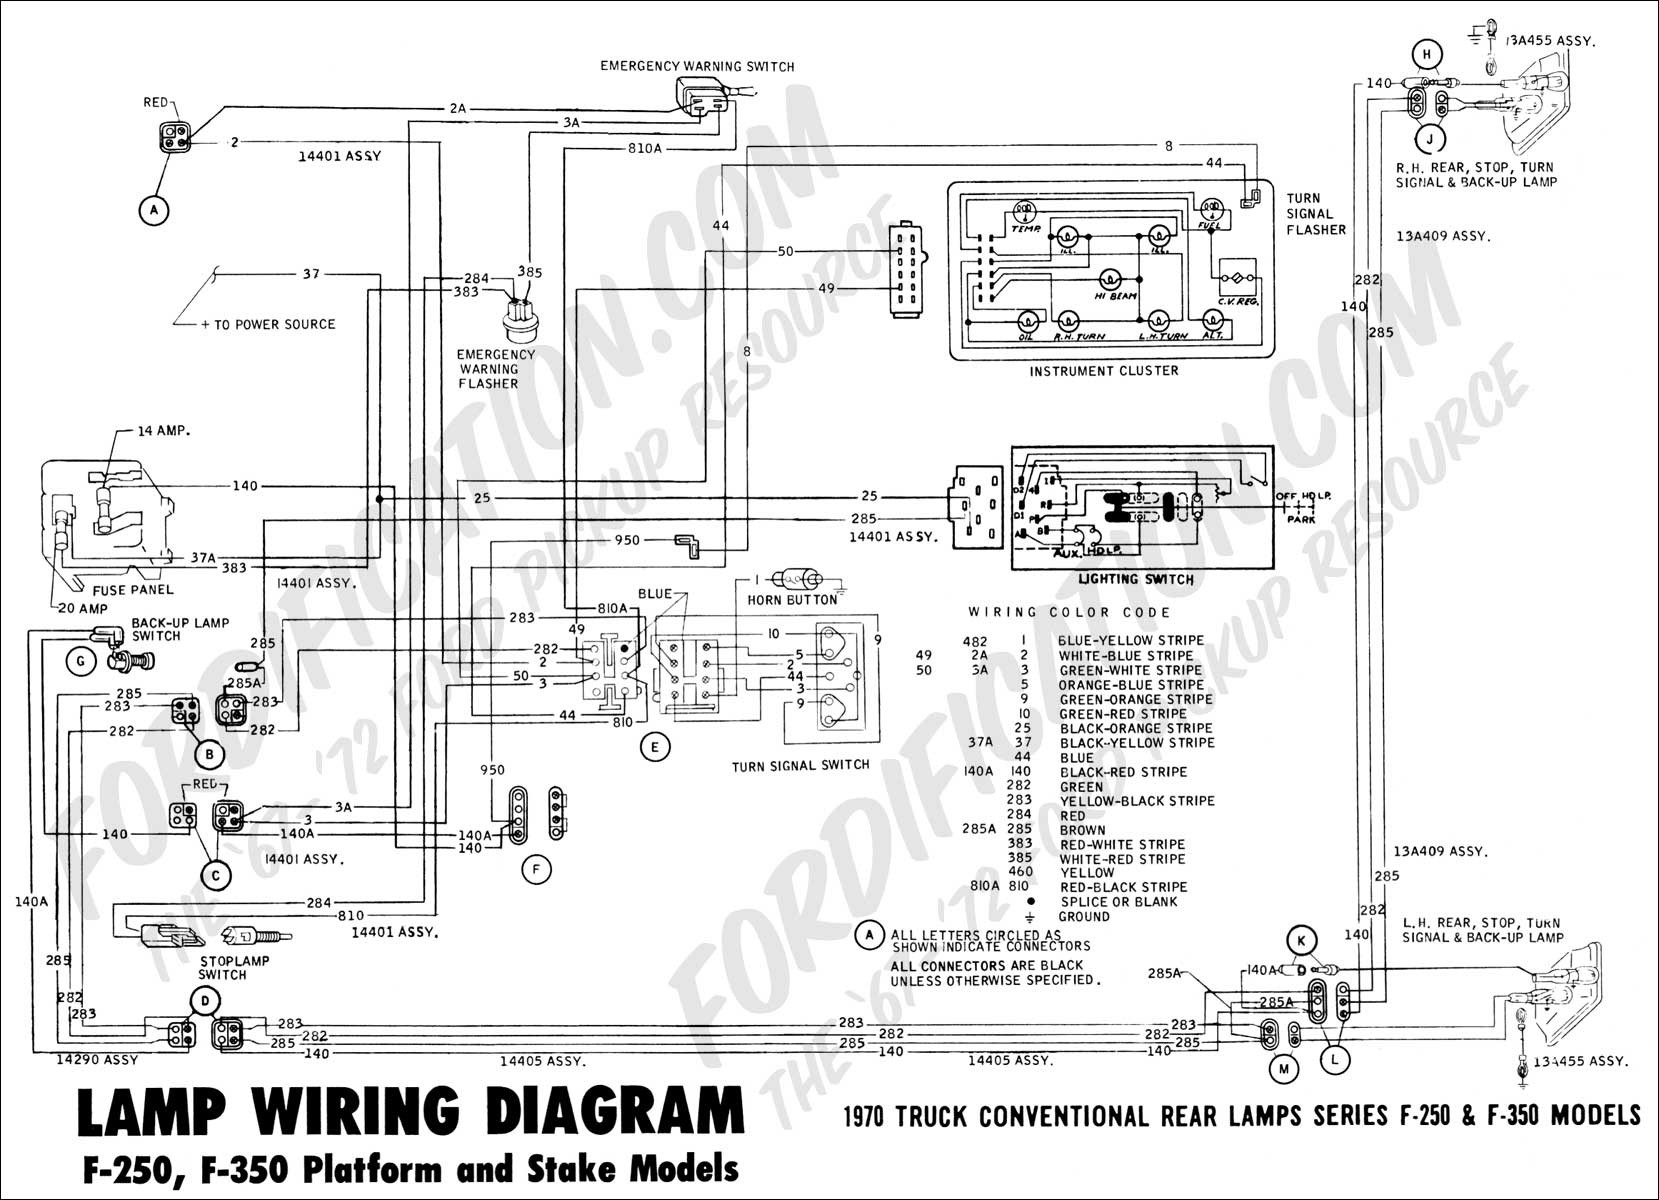 87 f150 tail light wiring diagram wire center u2022 rh ayseesra co Ford Ranger 4x4 Wiring Diagram 1989 Ford Ranger Wiring Diagram